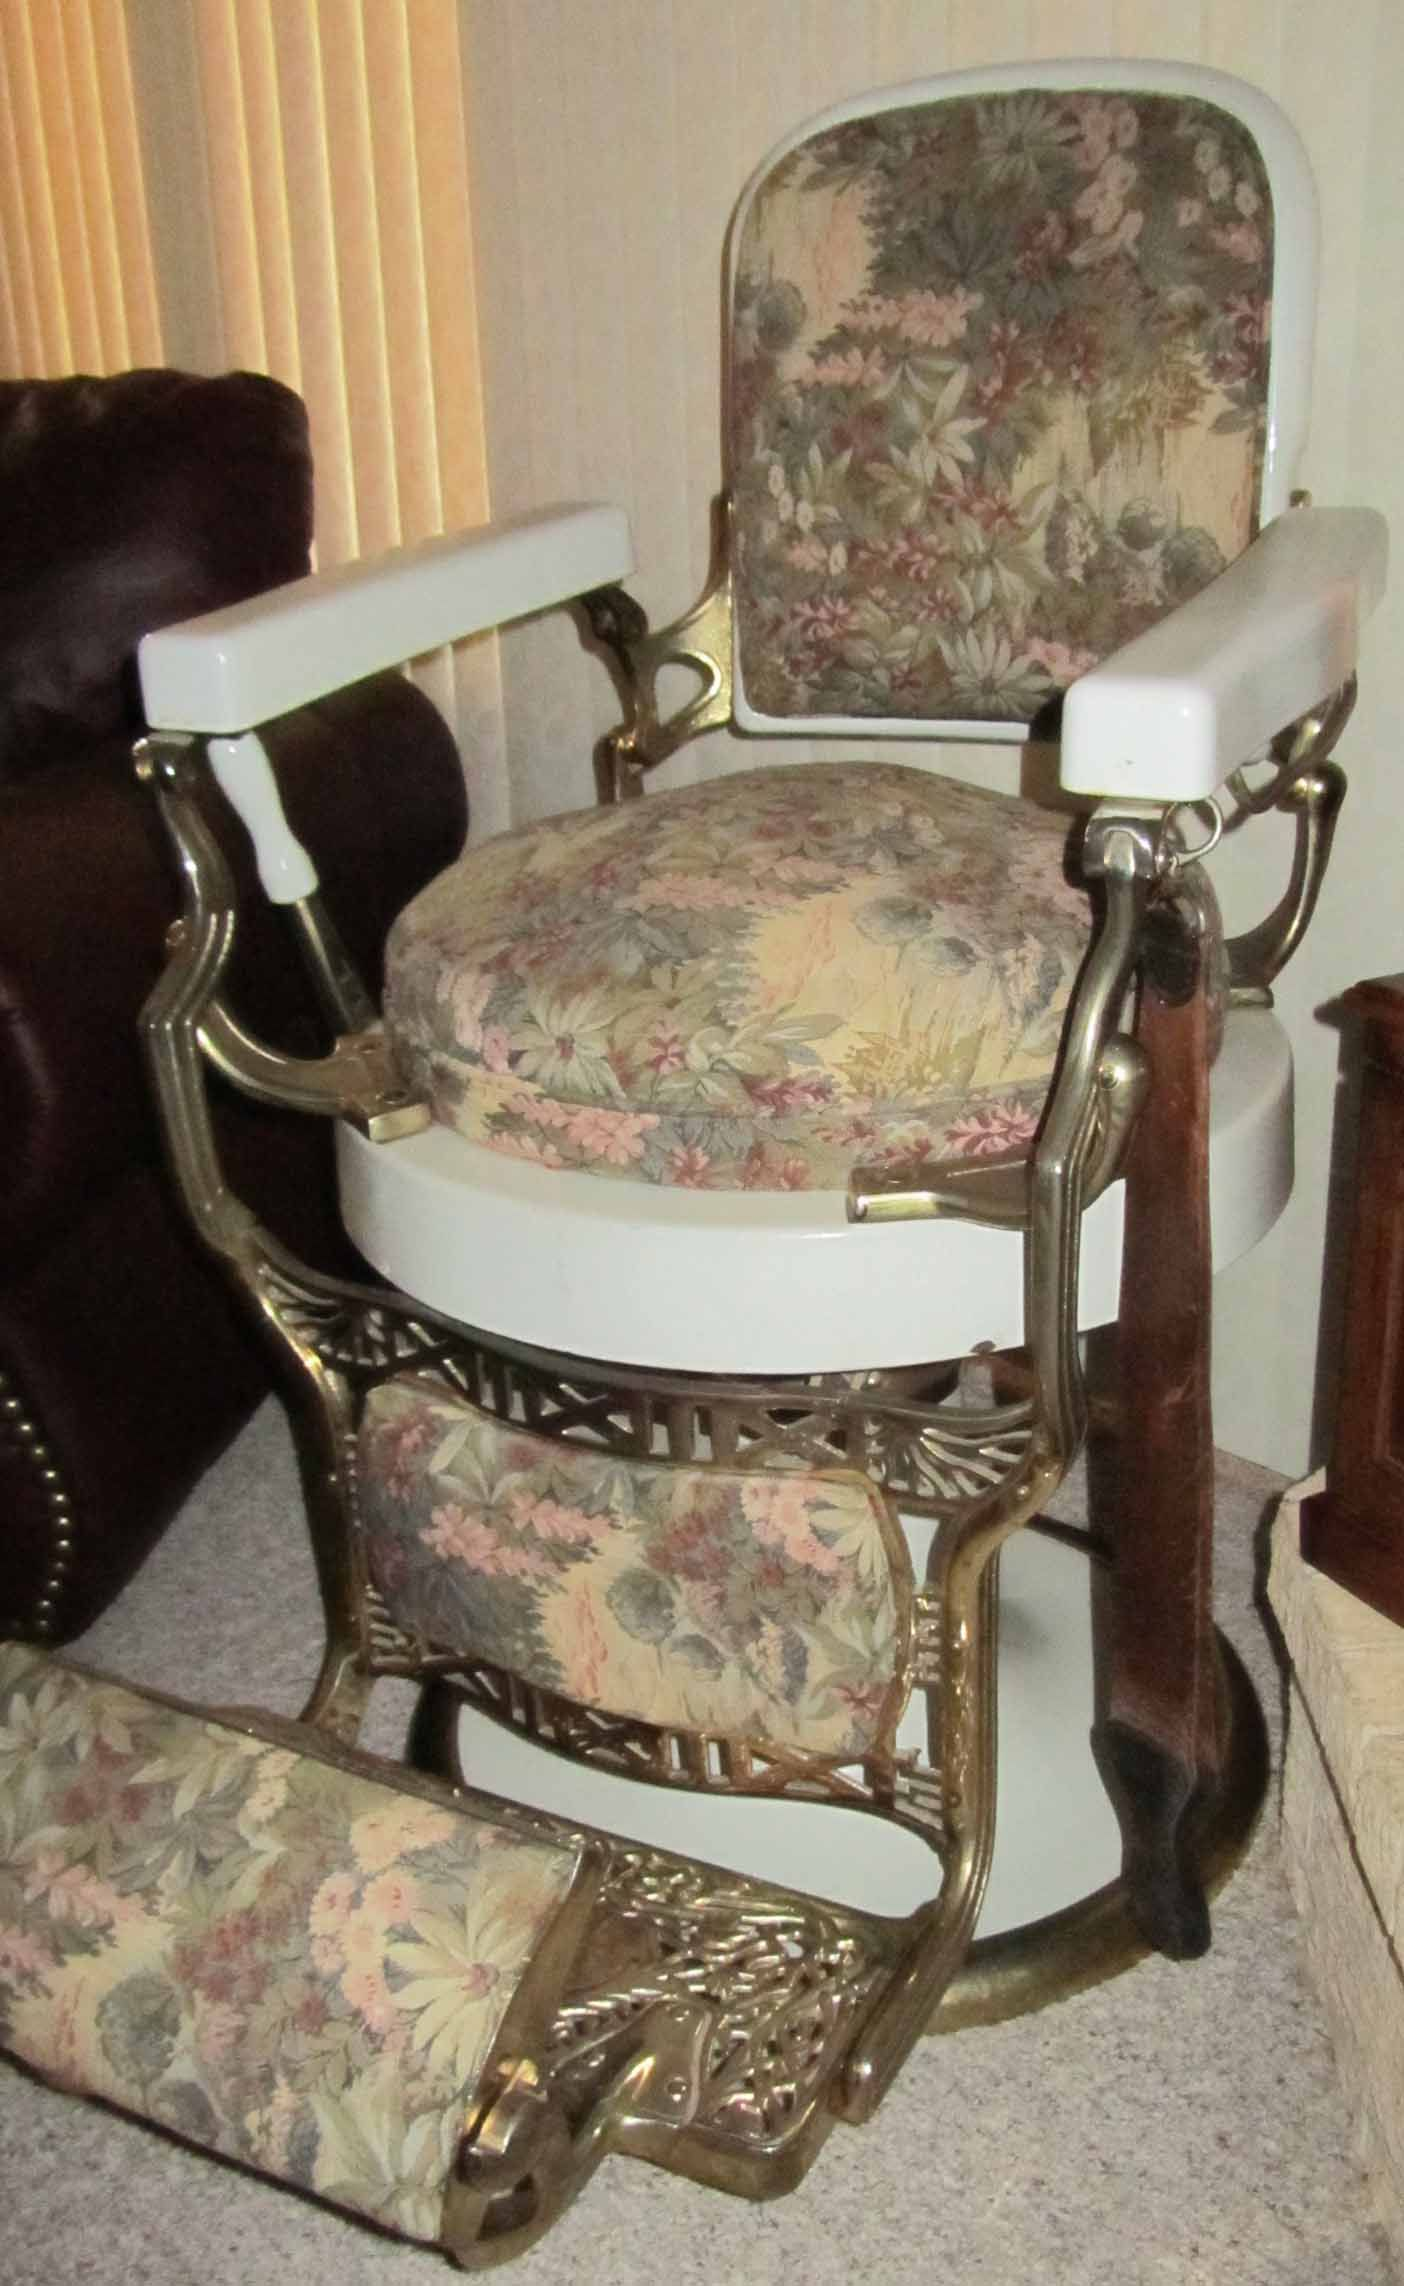 Antique Barber Chair For Sale Antique Barber Chairs Marketplace Buy And Sell Antique